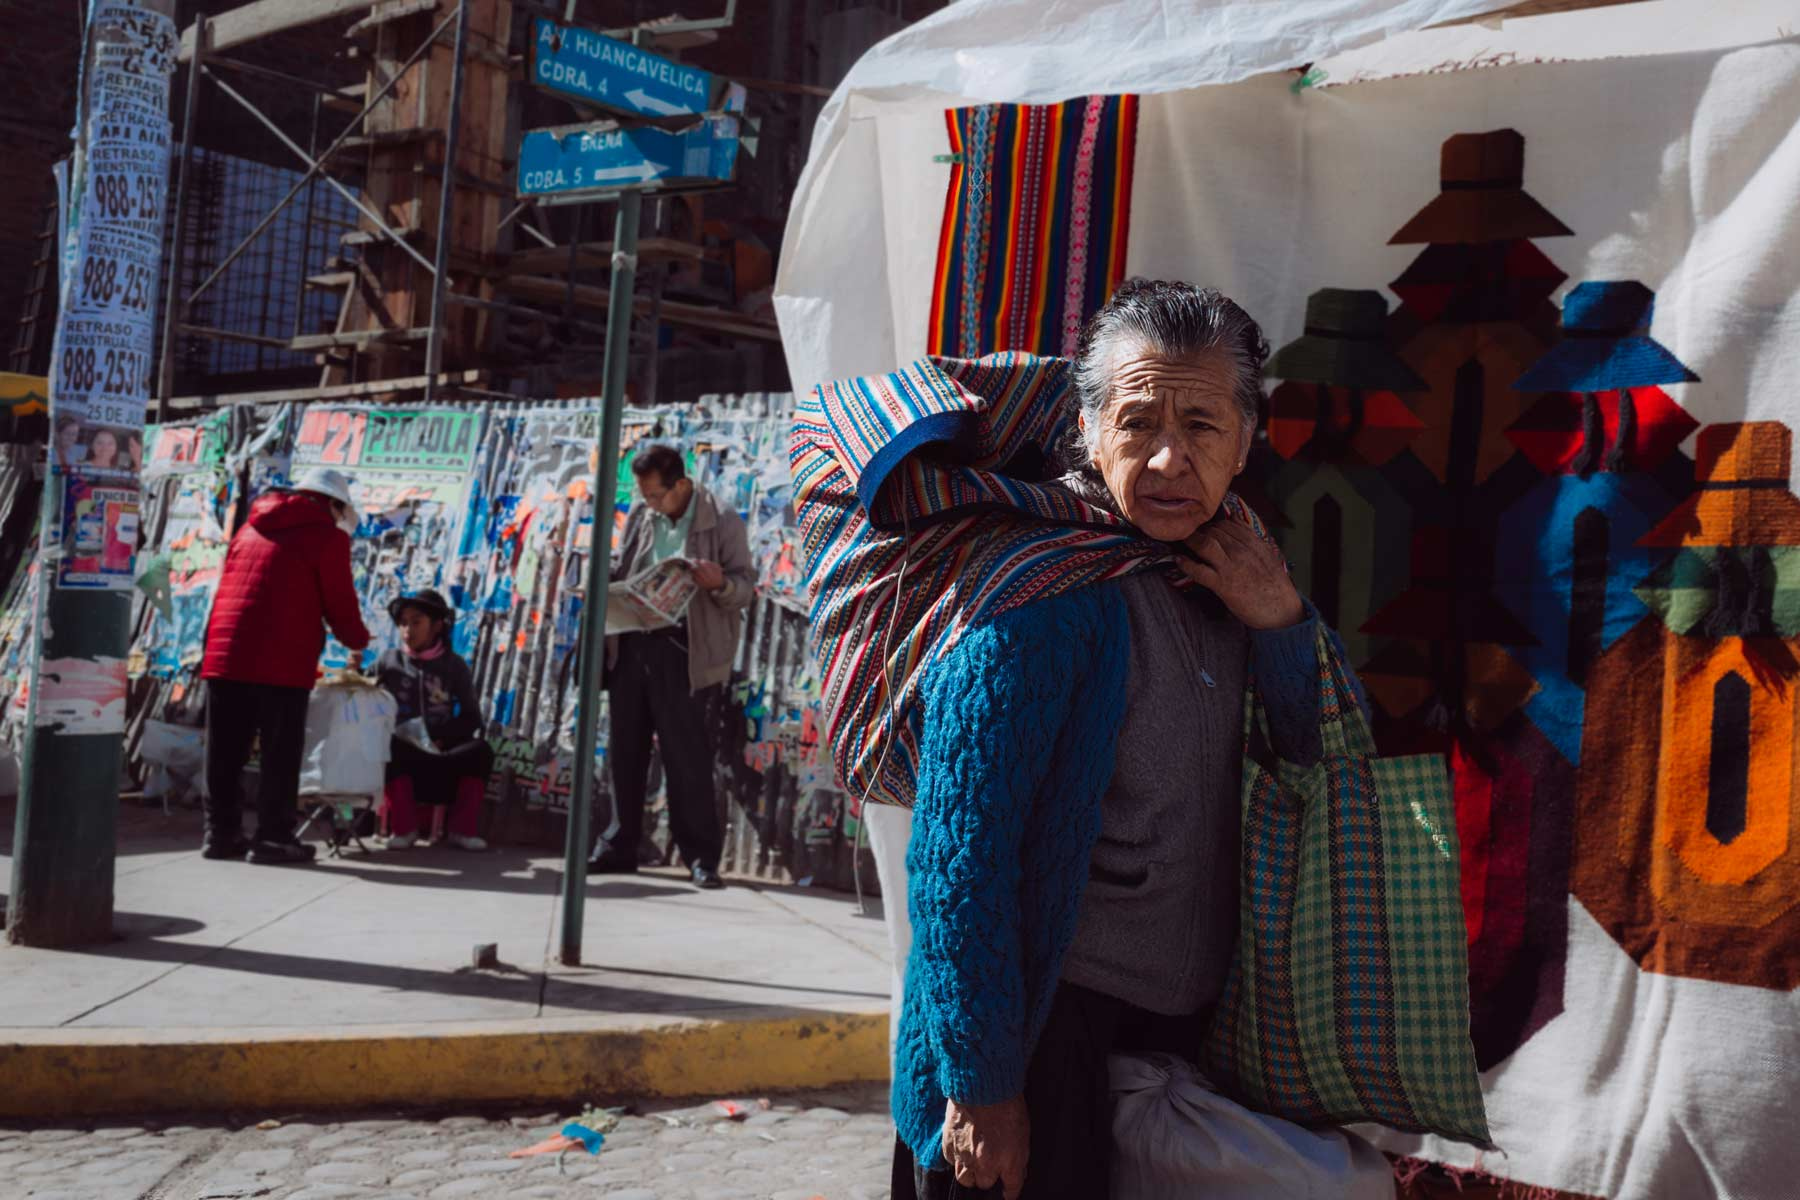 A woman carries goods from a local market in Huancayo.